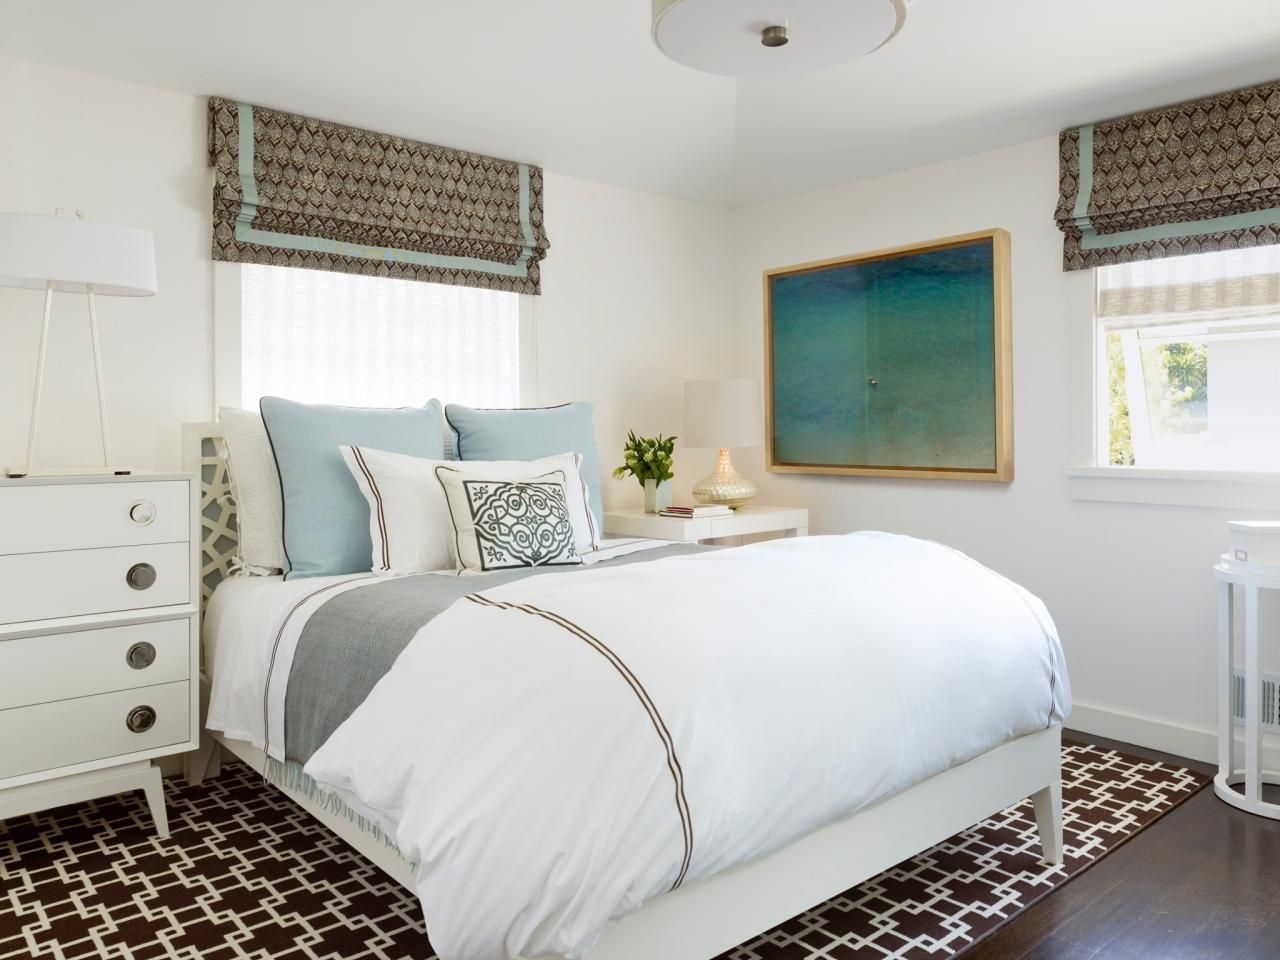 Small Master Bedroom Design Ideas Making A Small Bedroom Feel Larger With Images Small Bedroom Bedroom Design Home New hgtv small bedrooms